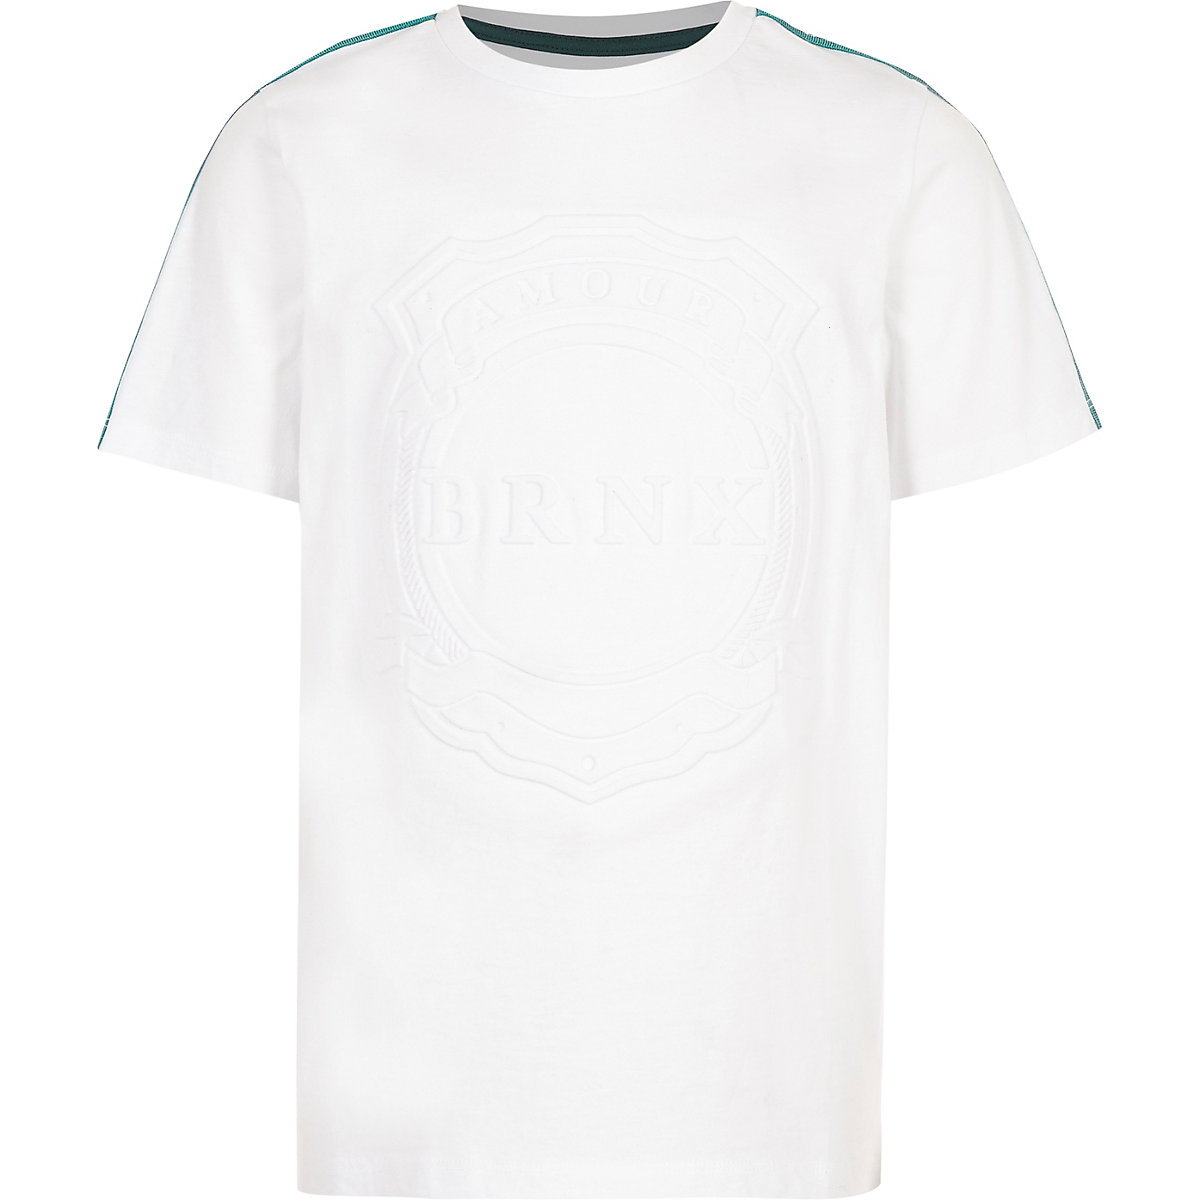 Boys white 'Brnx' tape T-shirt